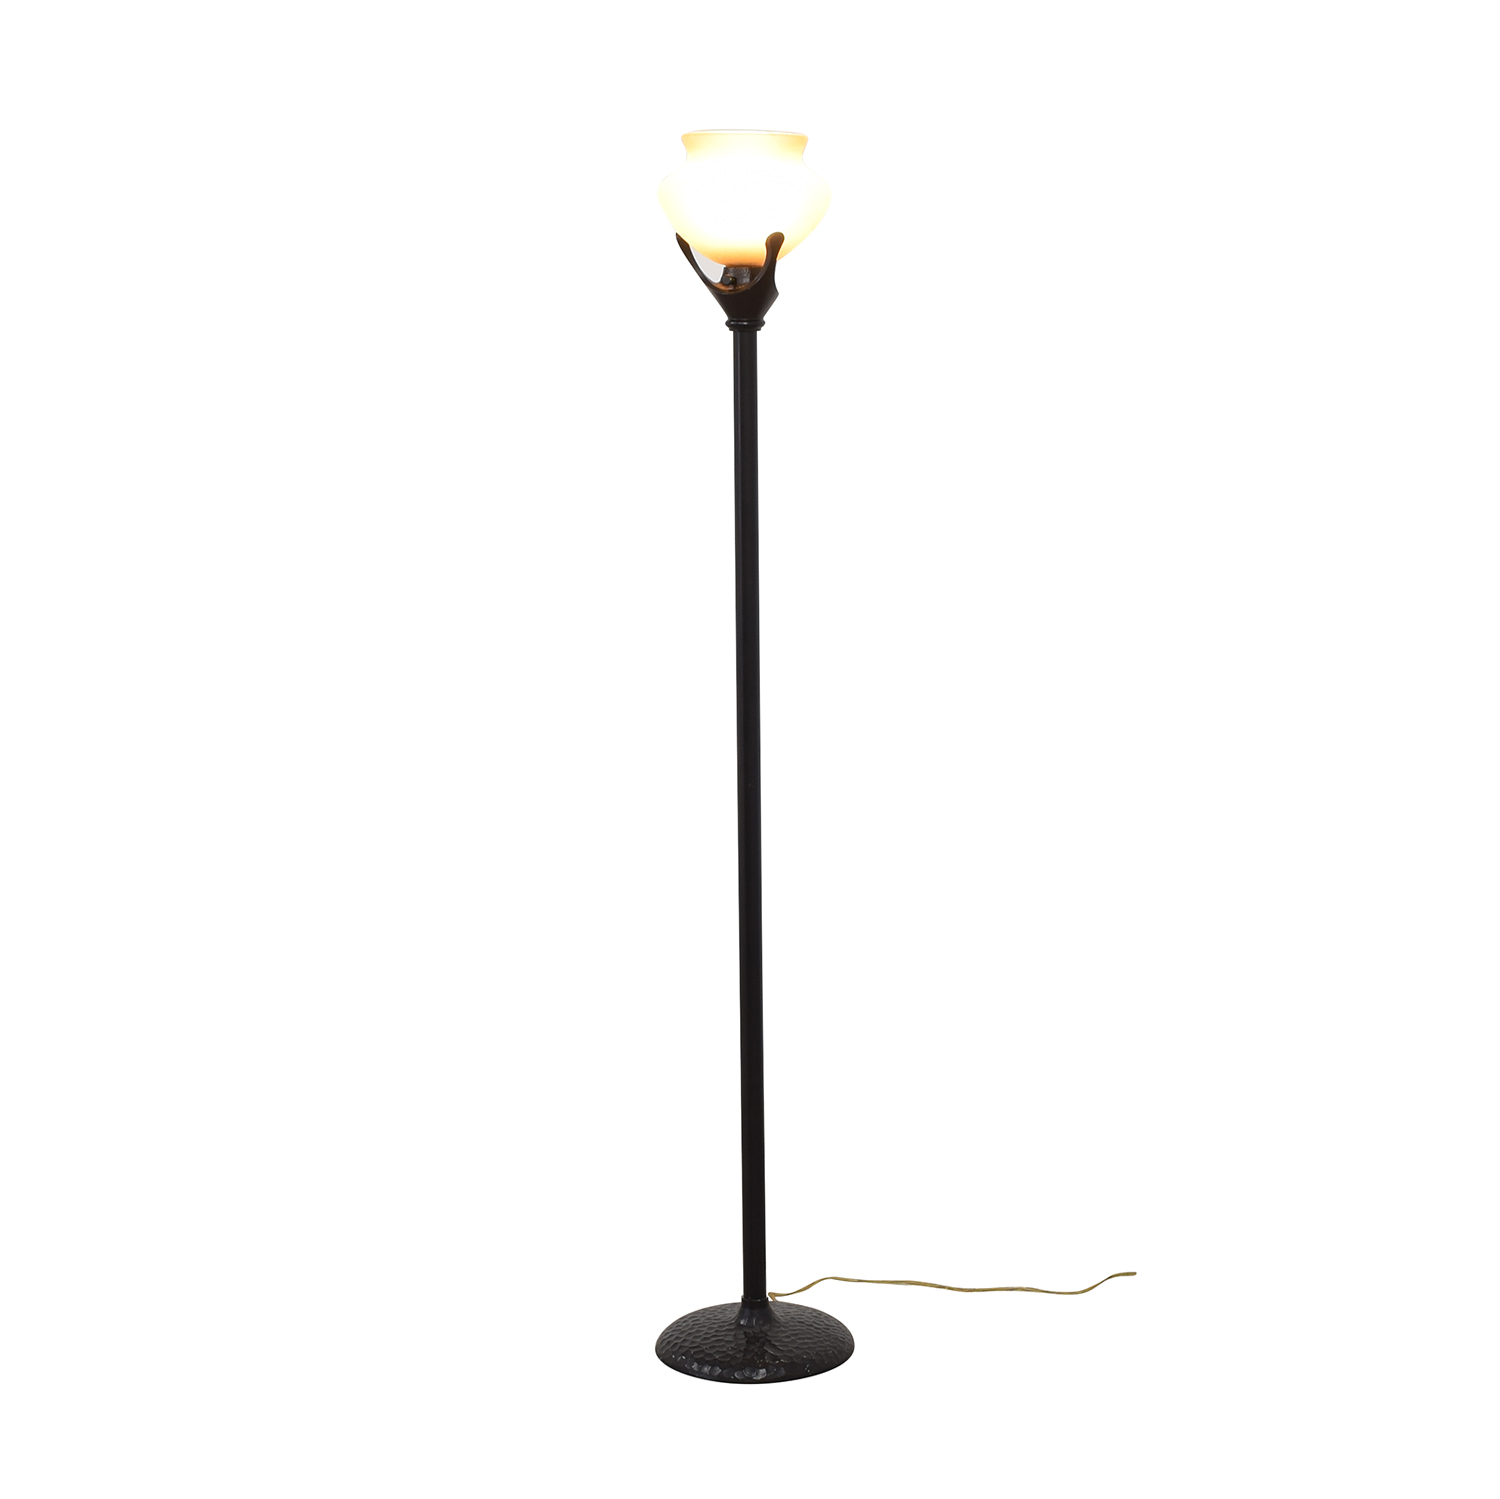 Torchiere Style Floor Lamp second hand